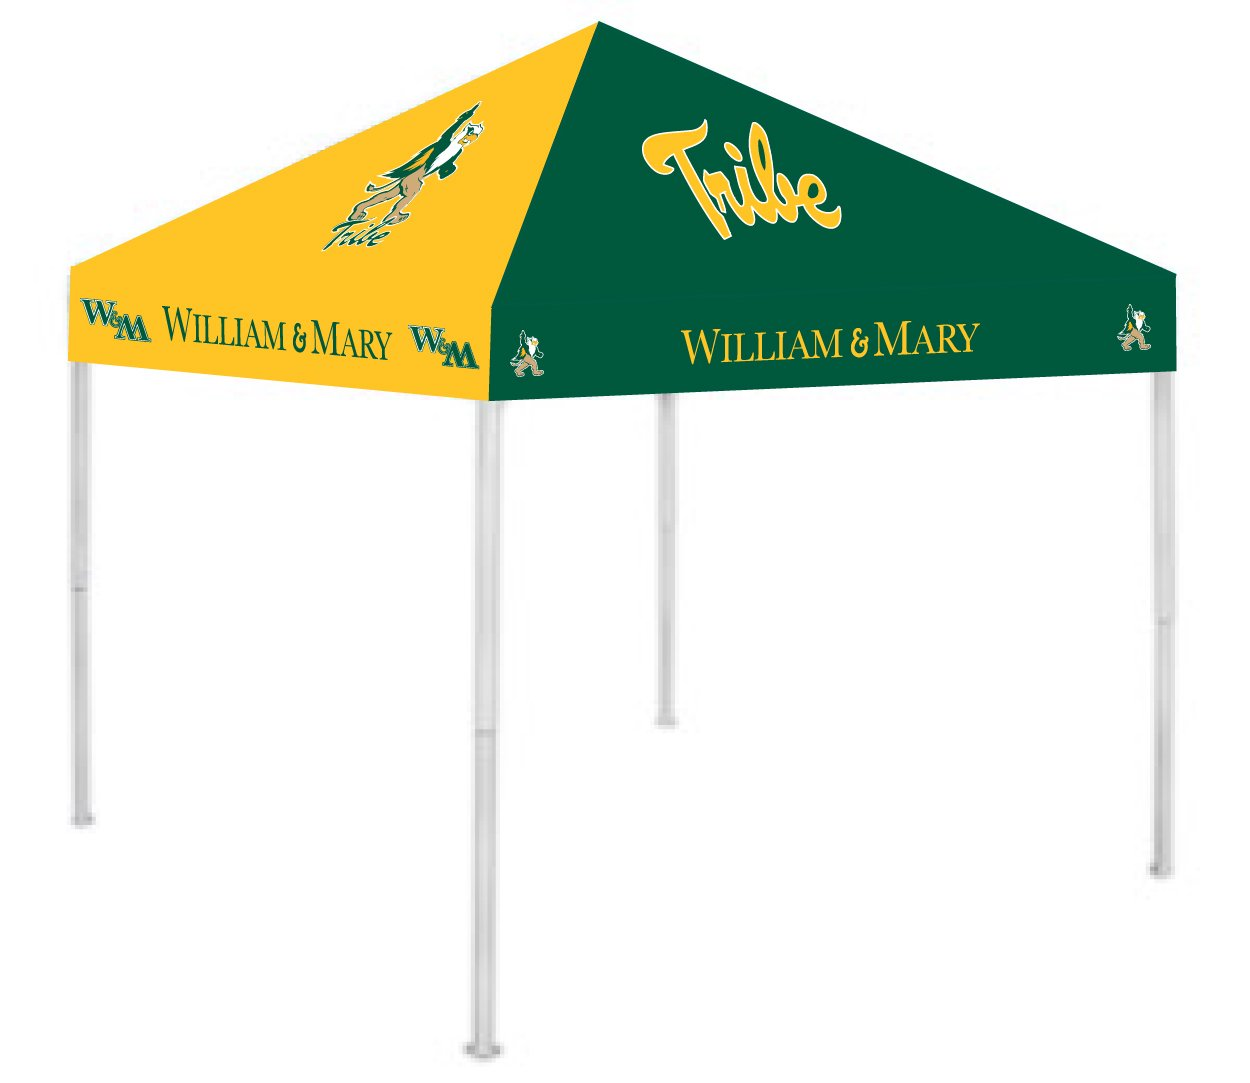 Rivalry RV436-5000 William and Mary Canopy B00824V30W 9 x 9|William and Mary William and Mary 9 x 9